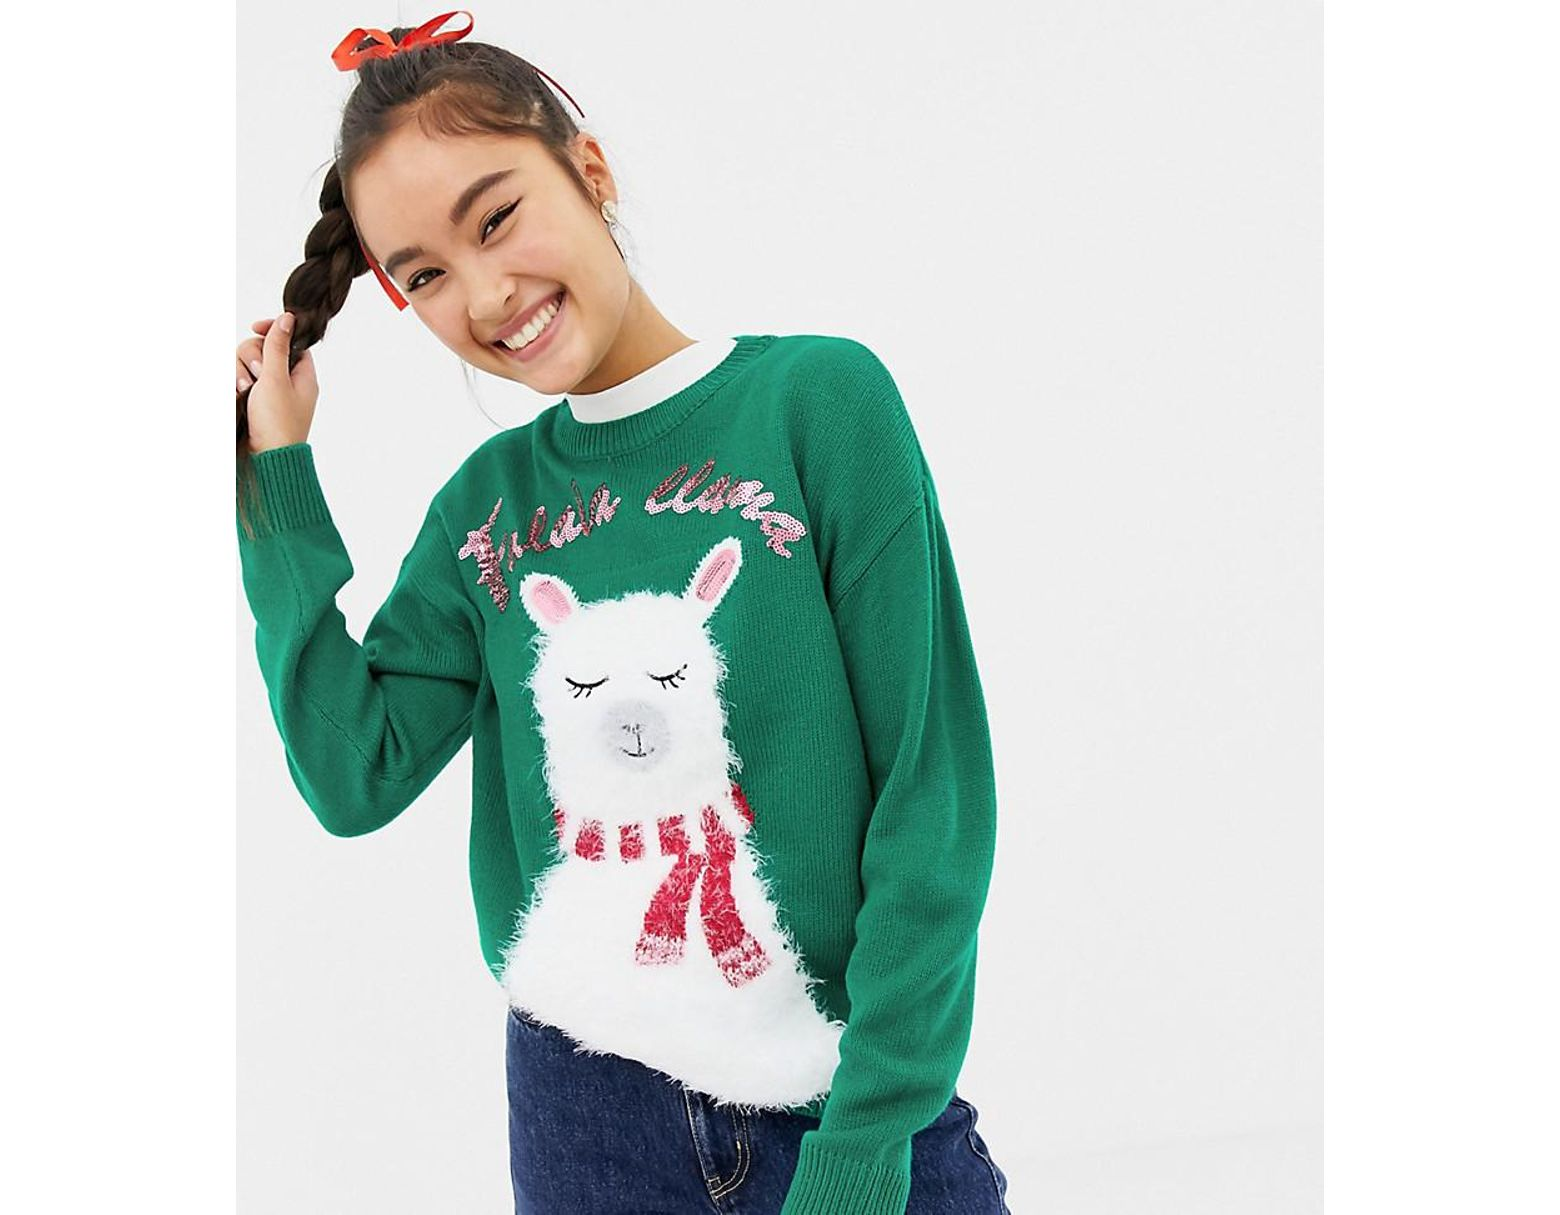 Llama Christmas Sweater.Women S Christmas Sweater With Llama Print In Green